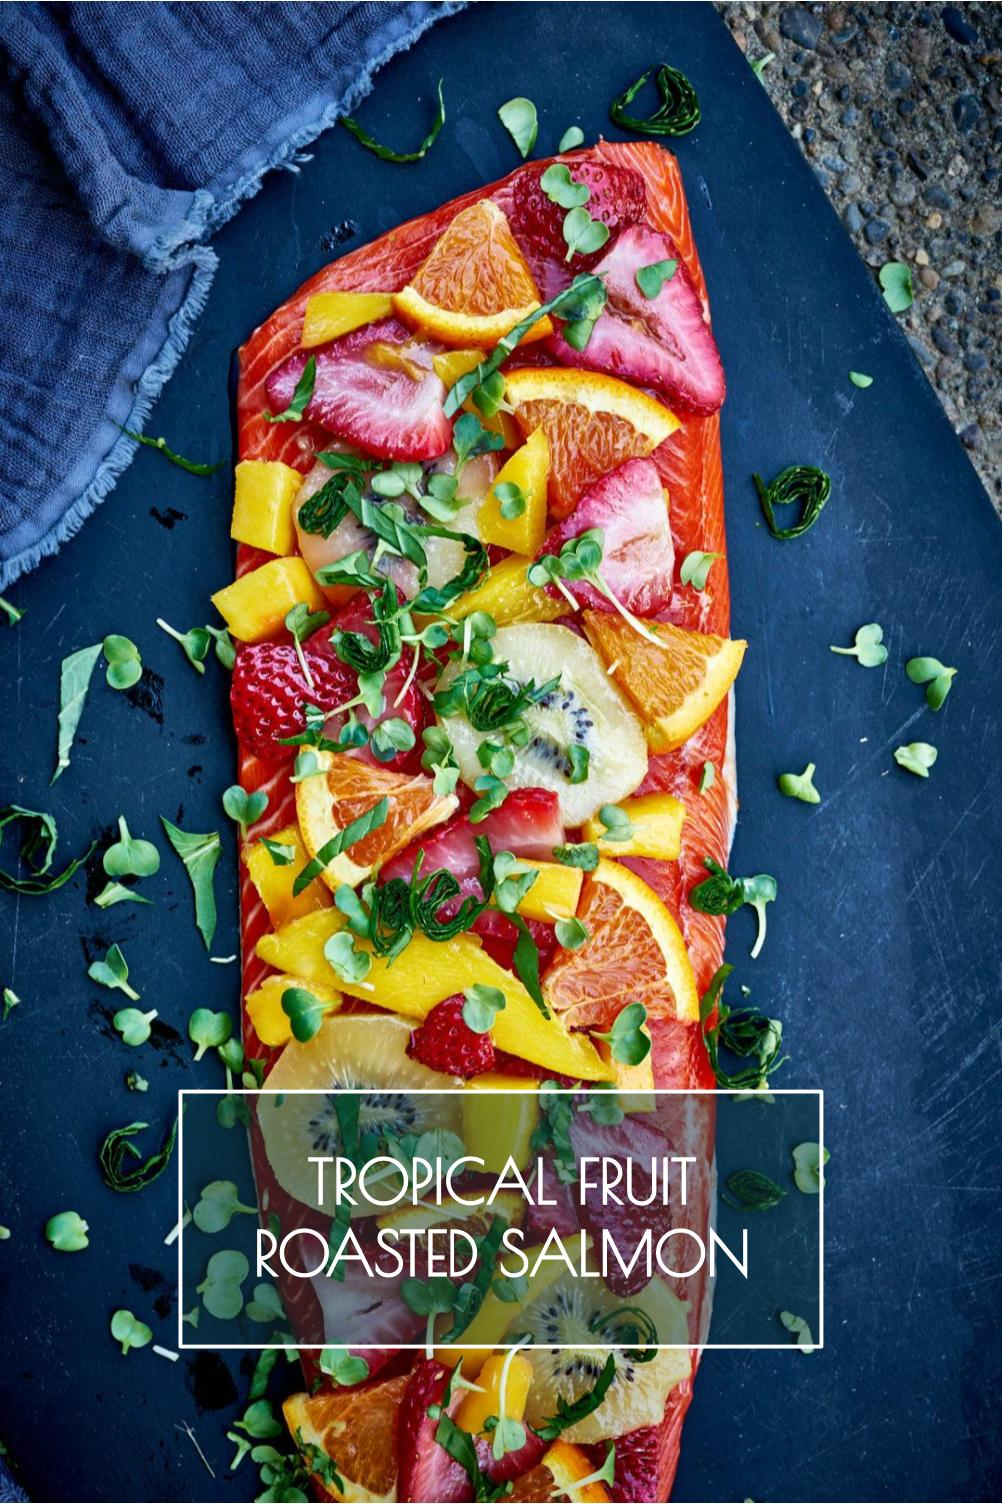 This tropical fruit roasted salmon brings a whole new meaning to peak season freshness. Get ready to be blown away by these Summer flavors! #summer #salmon #fruitsalad #tropical #fruit #copperriversalmon